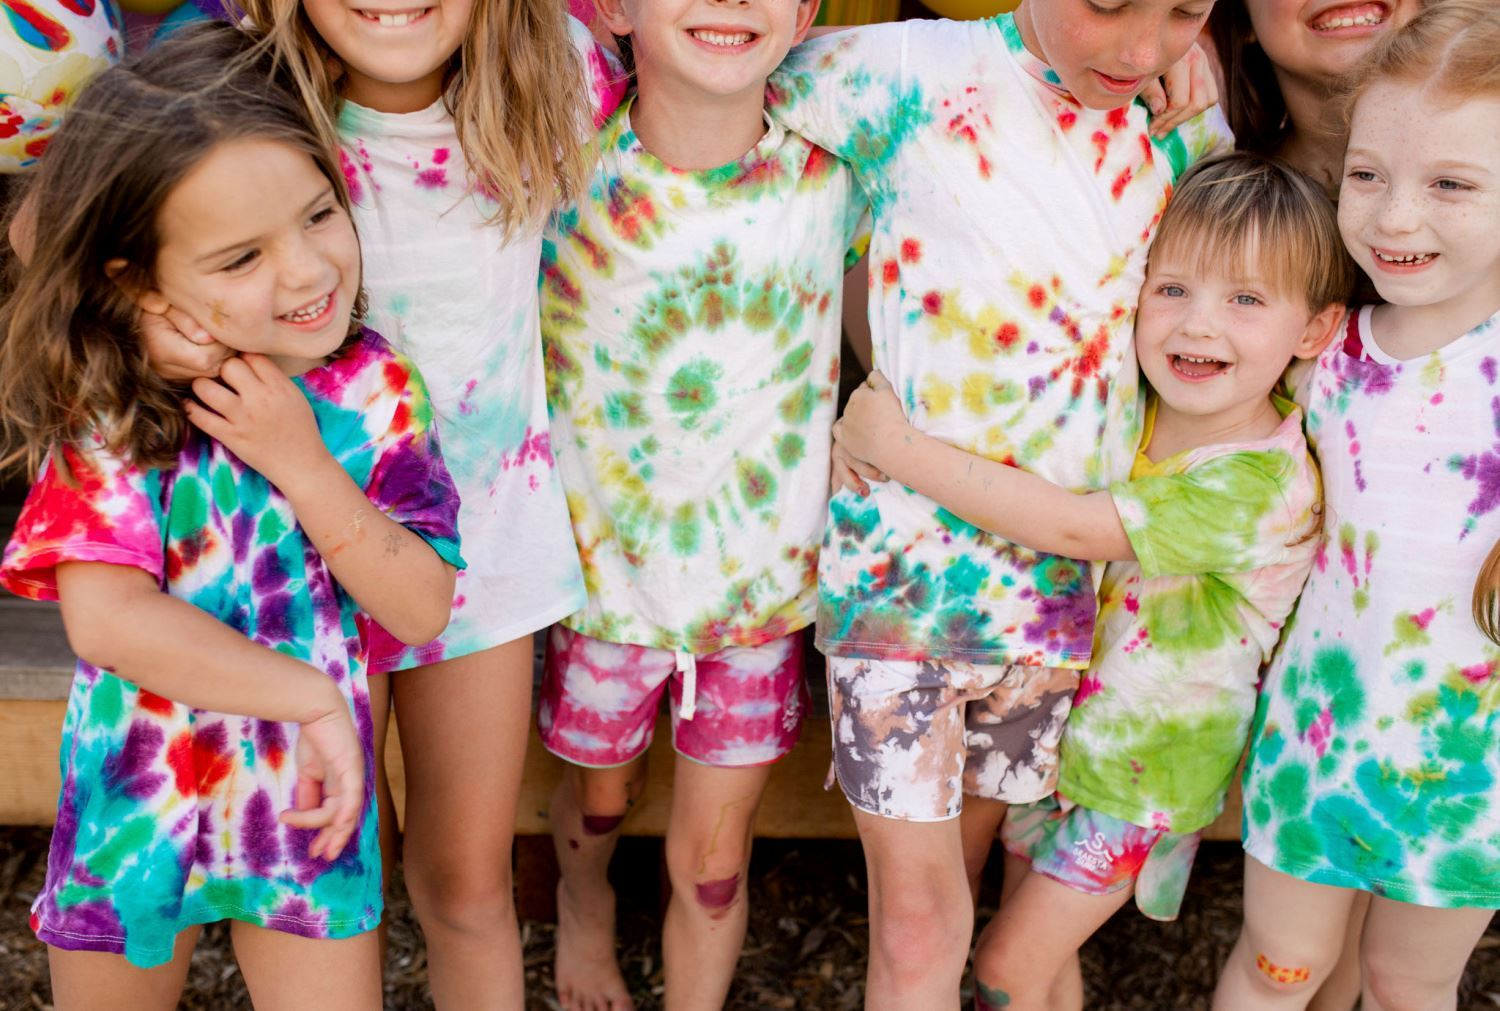 How to throw a tie-dye party in your backyard